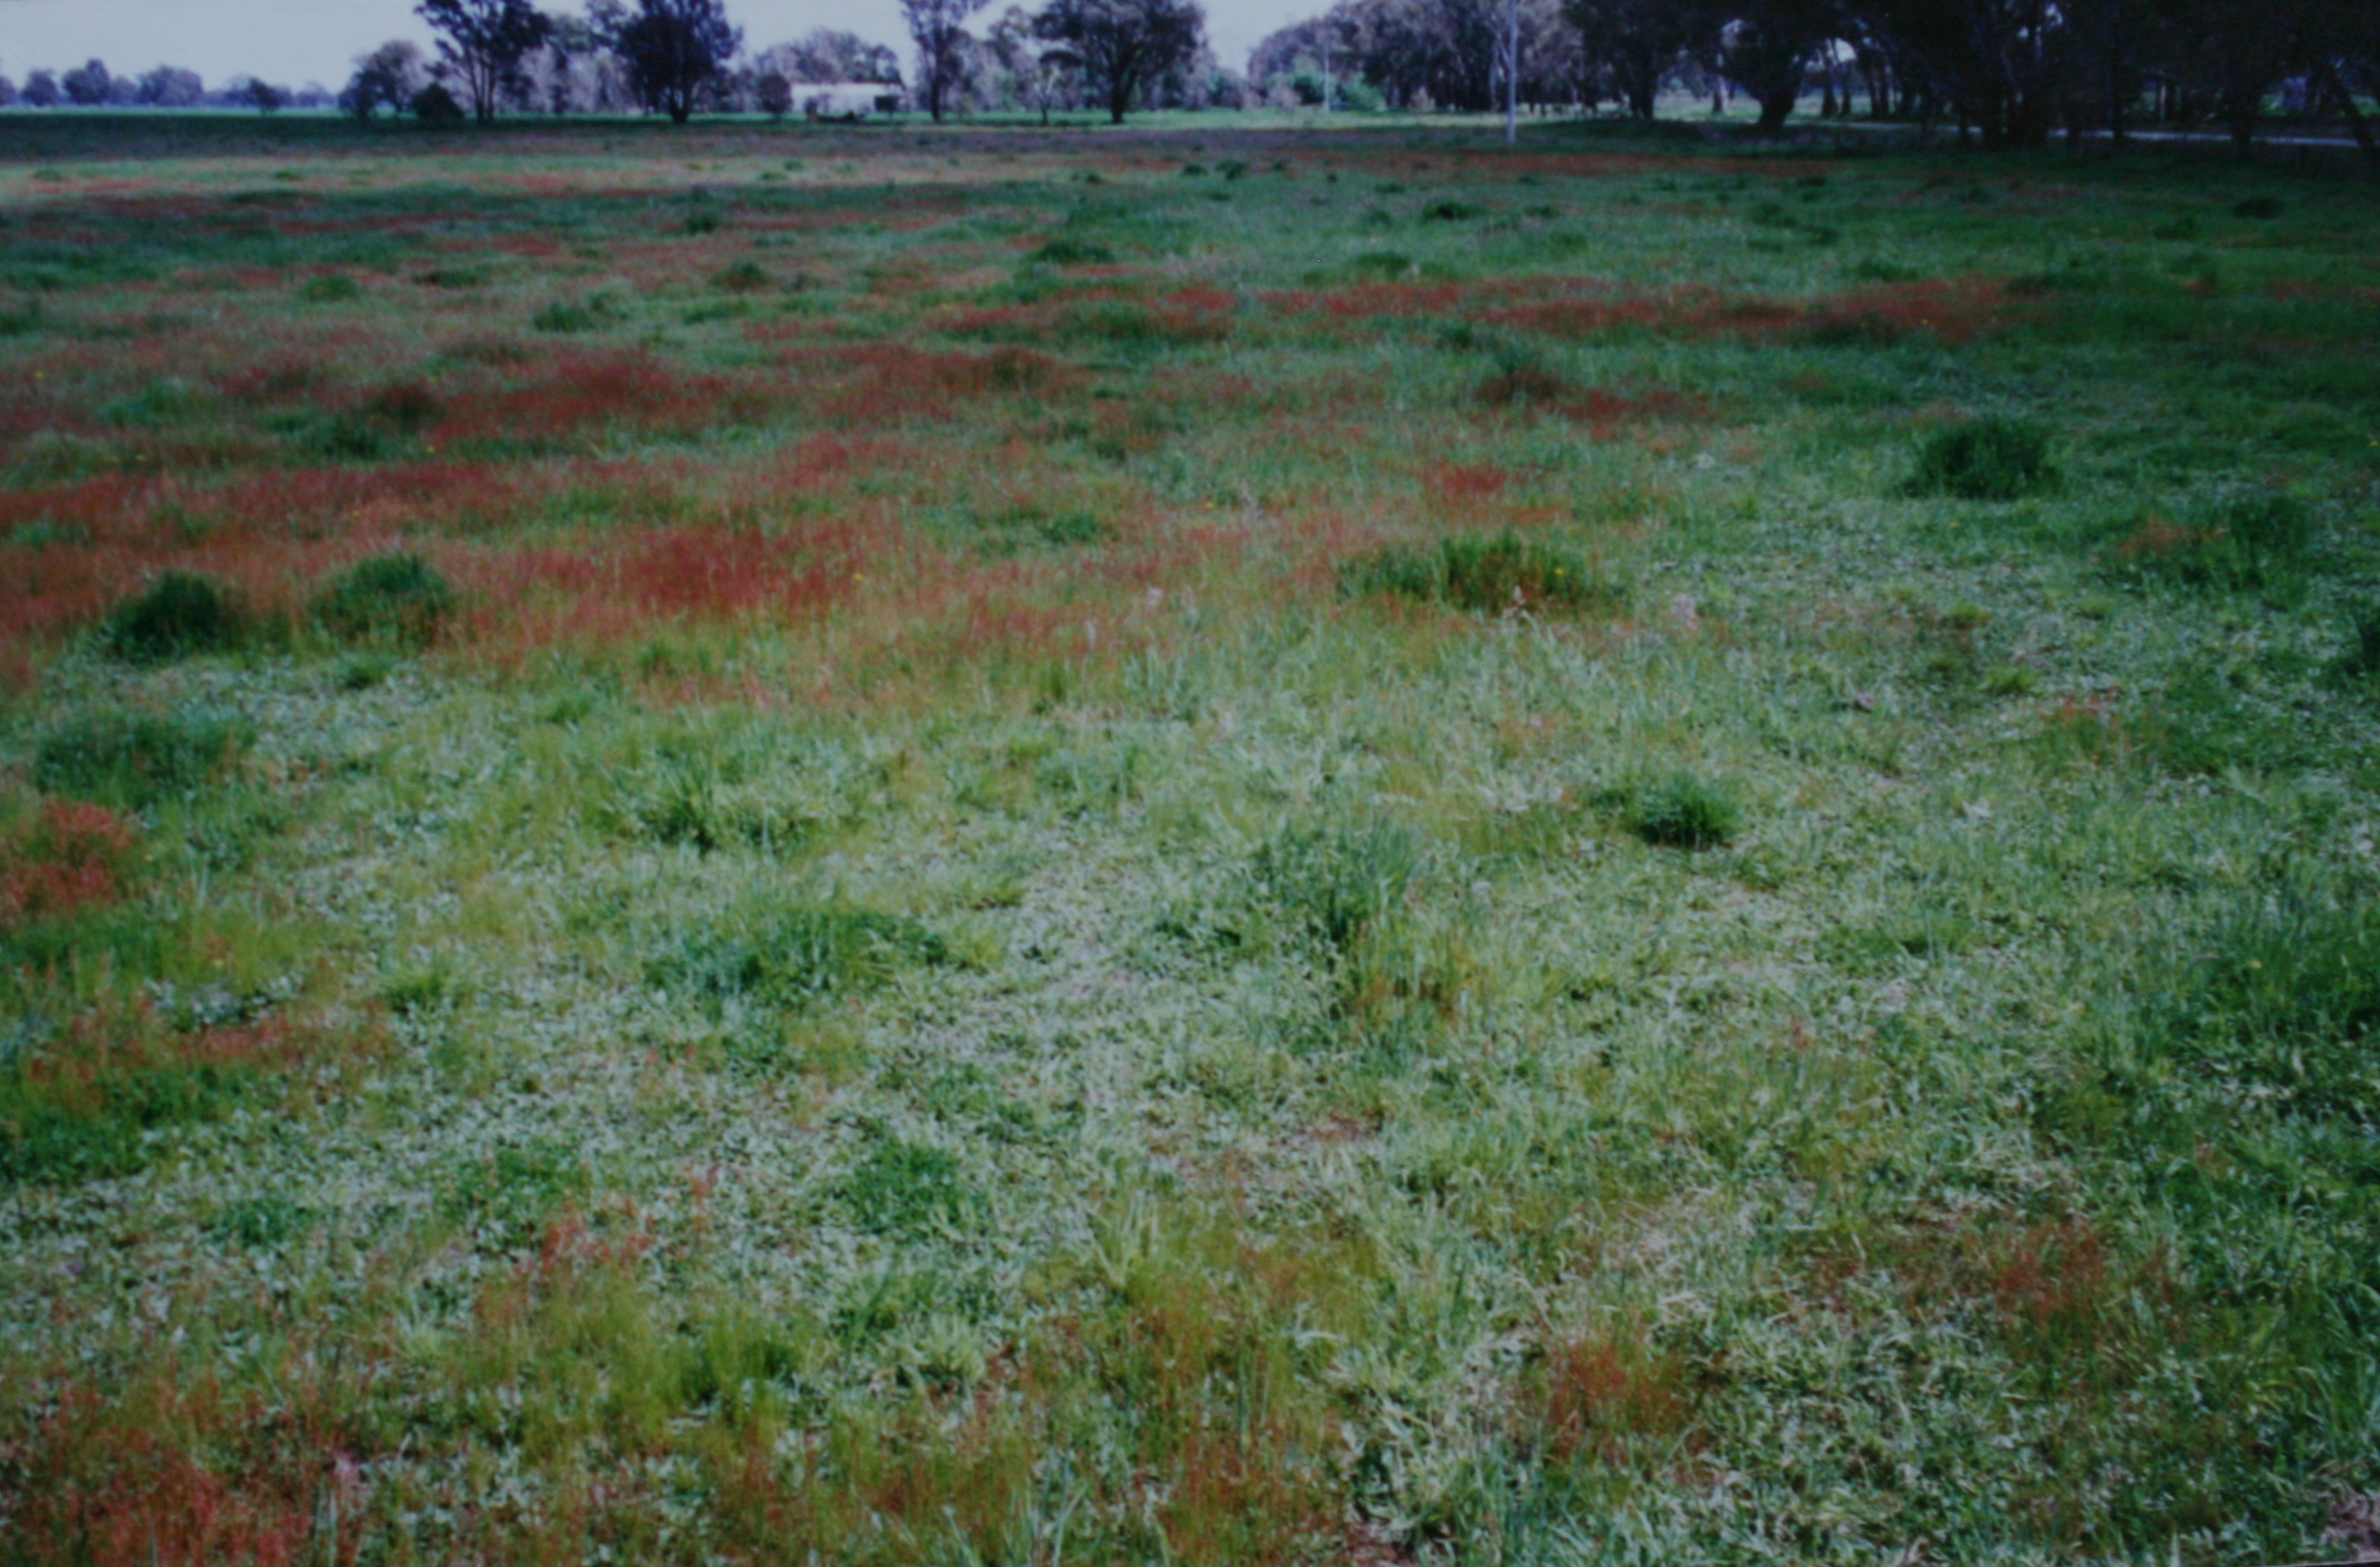 At purchase, June 1996, showing pasture species of sorrel, flatweed, and some cocksfoot tussocks.